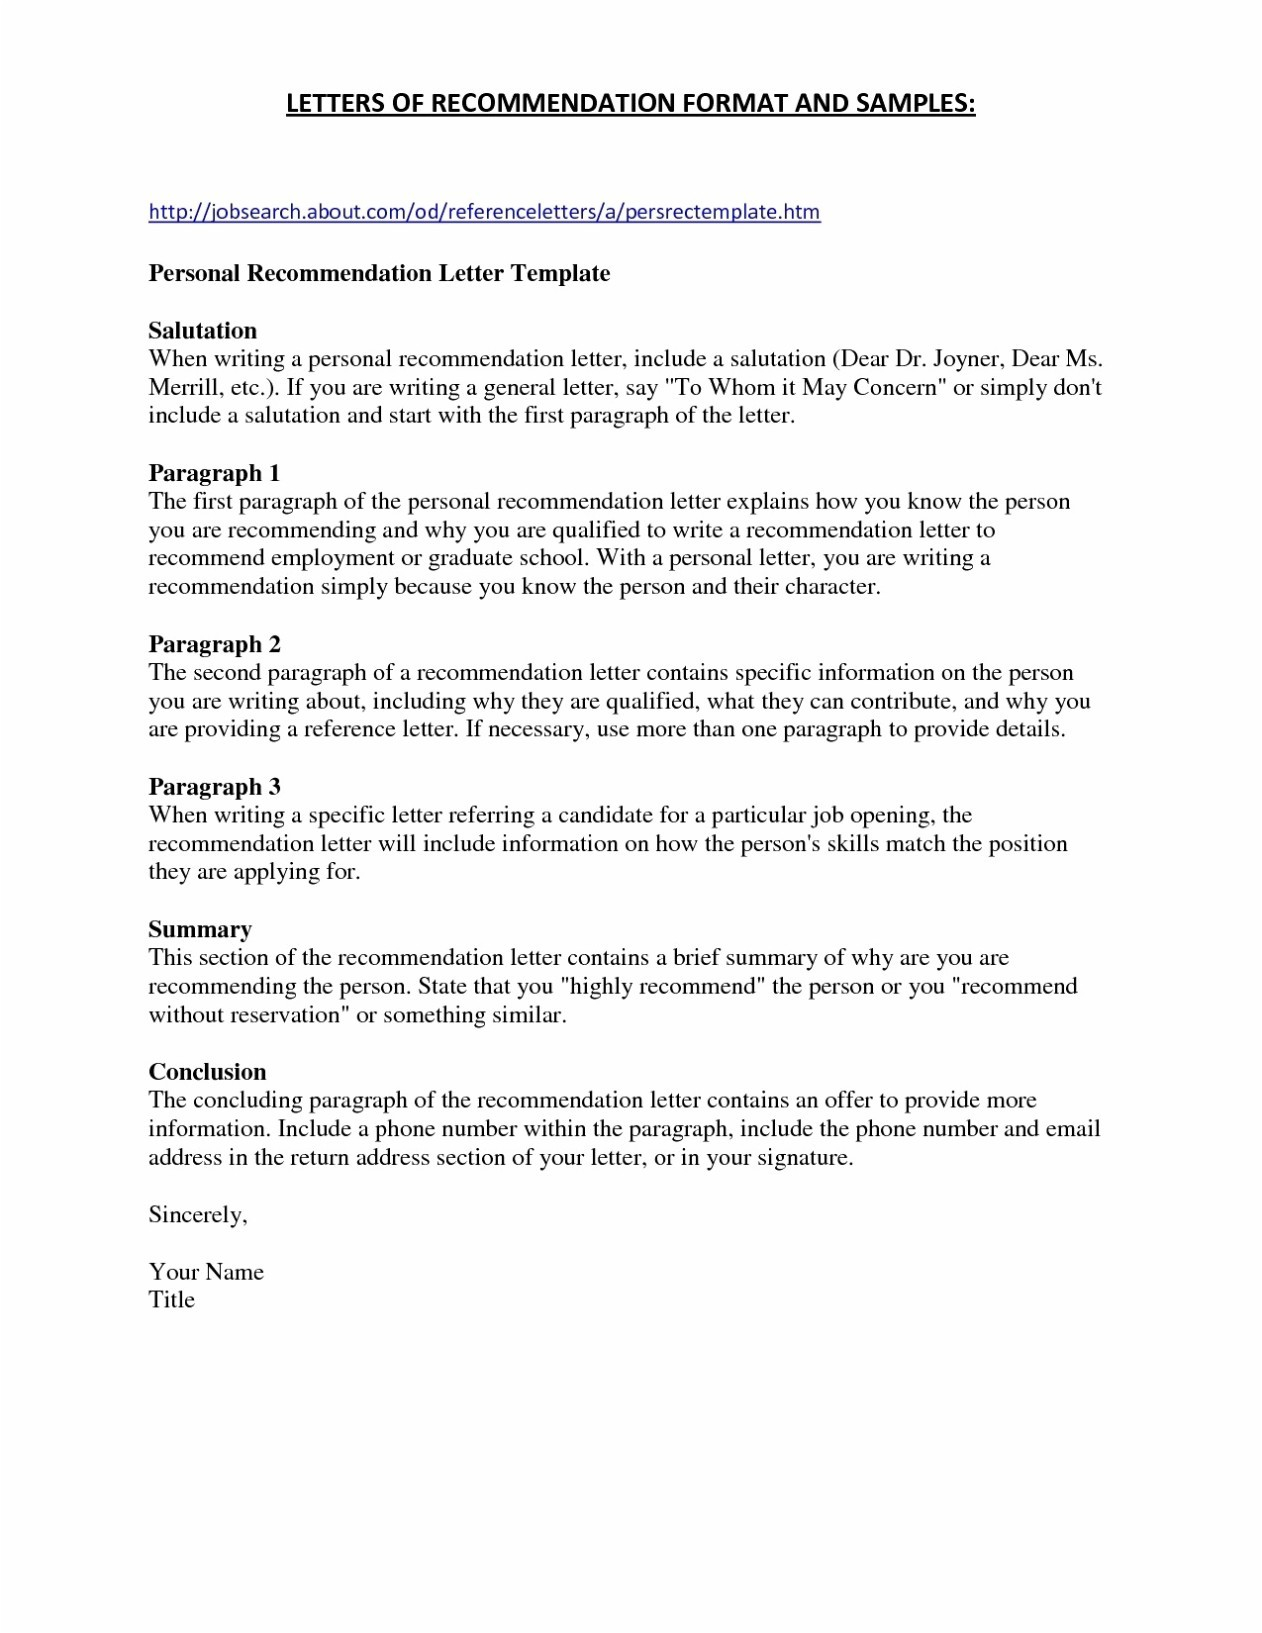 Mission Trip Letter Template - How to format A Resume Unique Latest Resume format Pr Resume